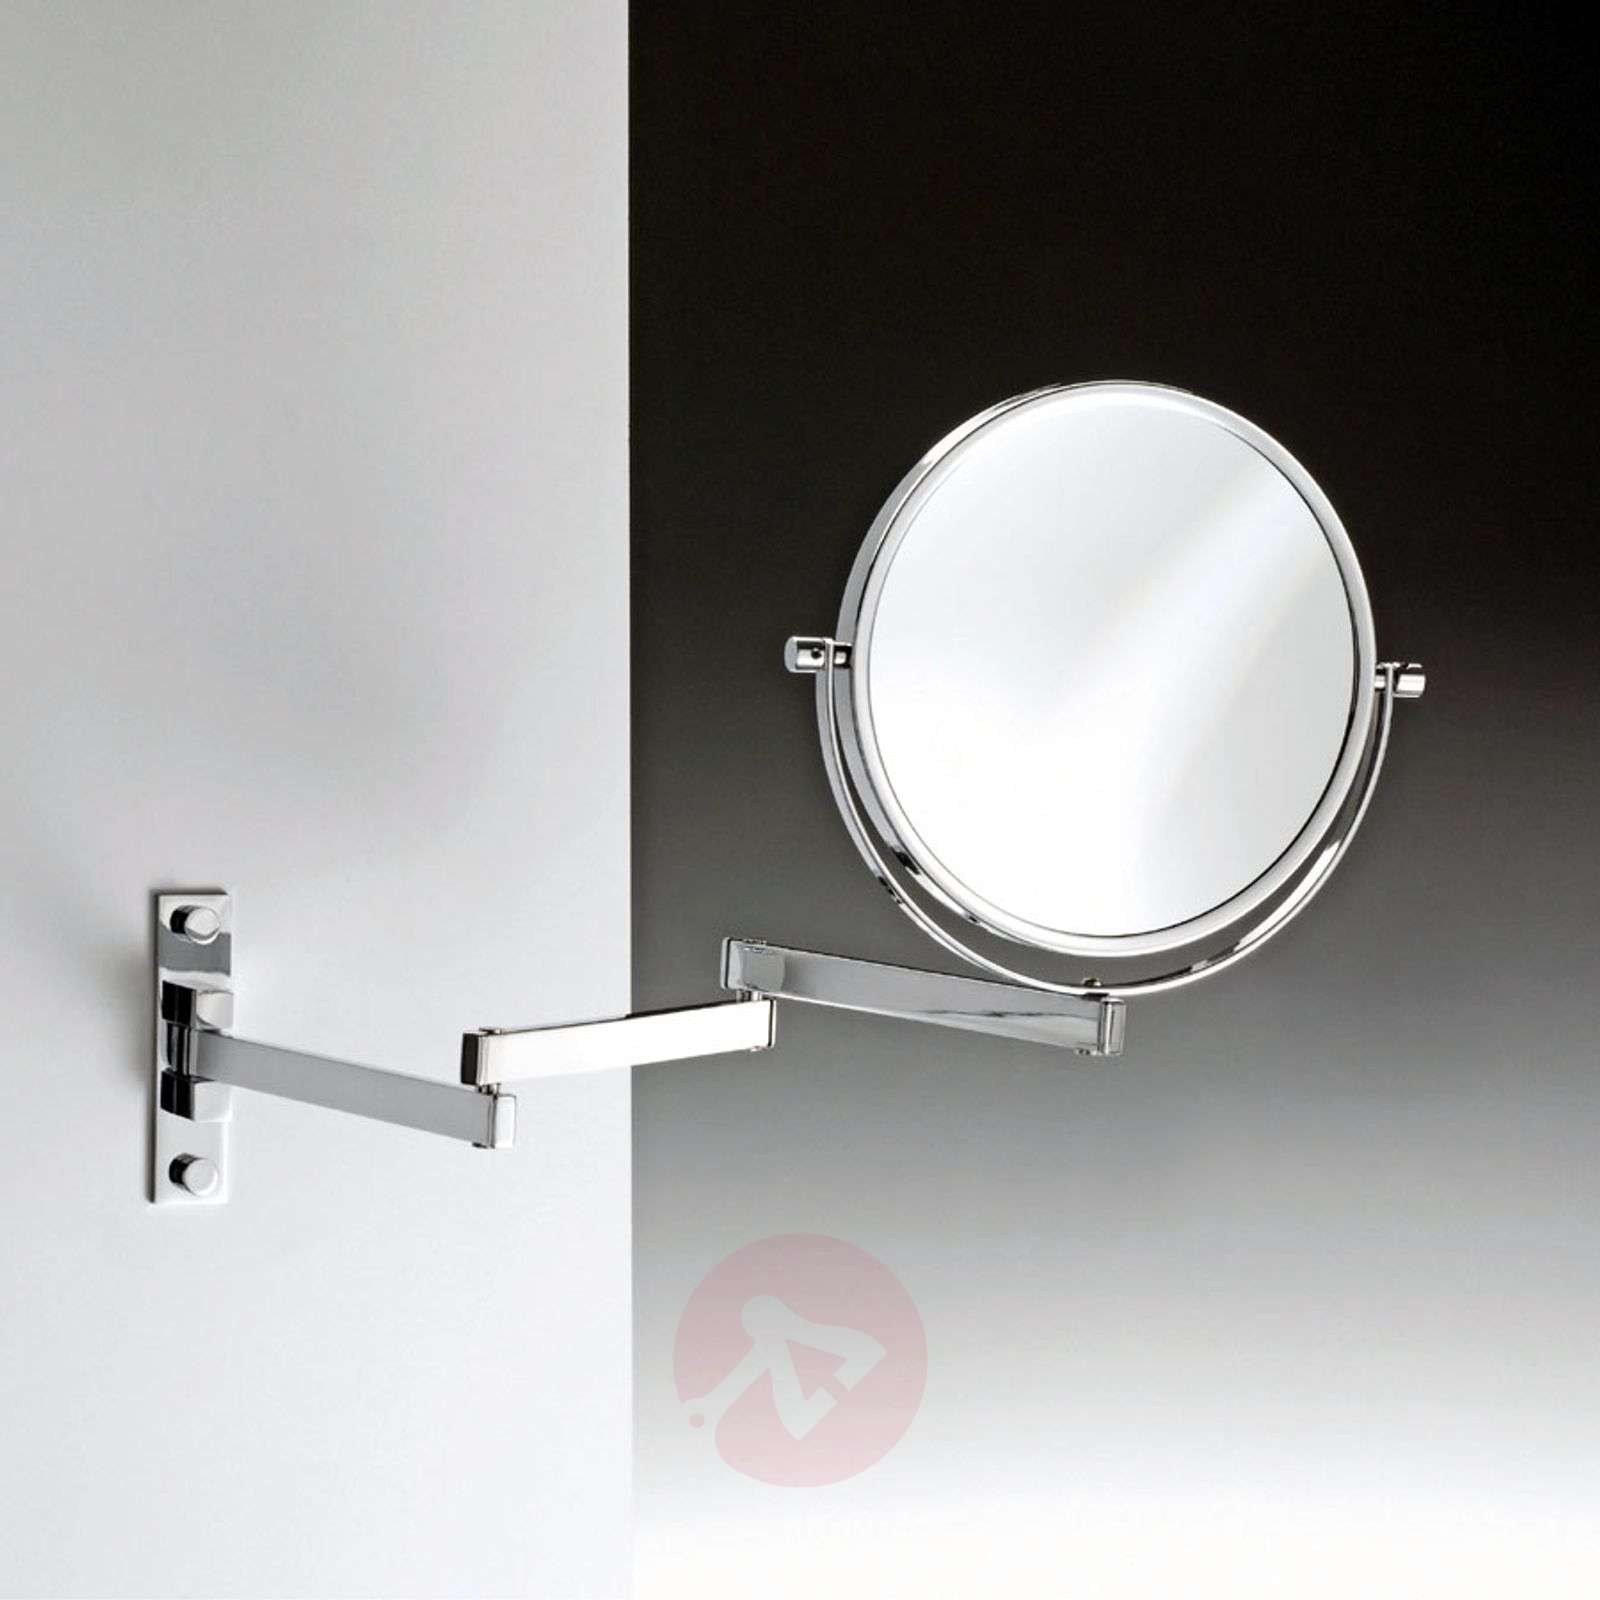 BRIGHT noble cosmetic wall mirror, 5x-2504200-01